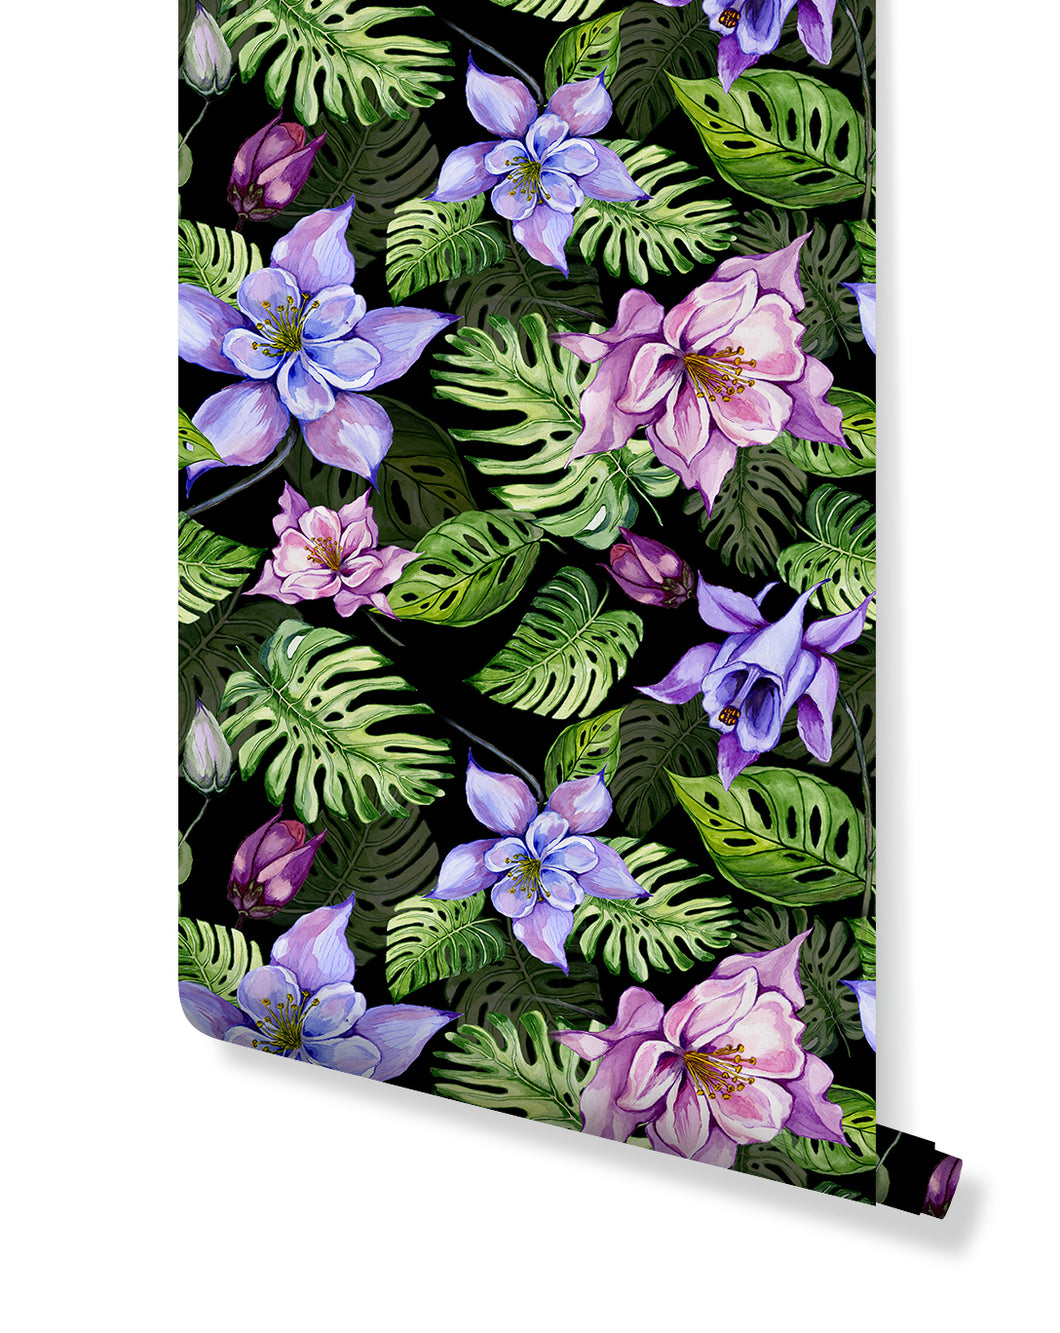 Tropical floral temporary removable wallpaper, self adhesive wall paper vinyl, watercolor exotic monstera leaves and columbine flowers CC160